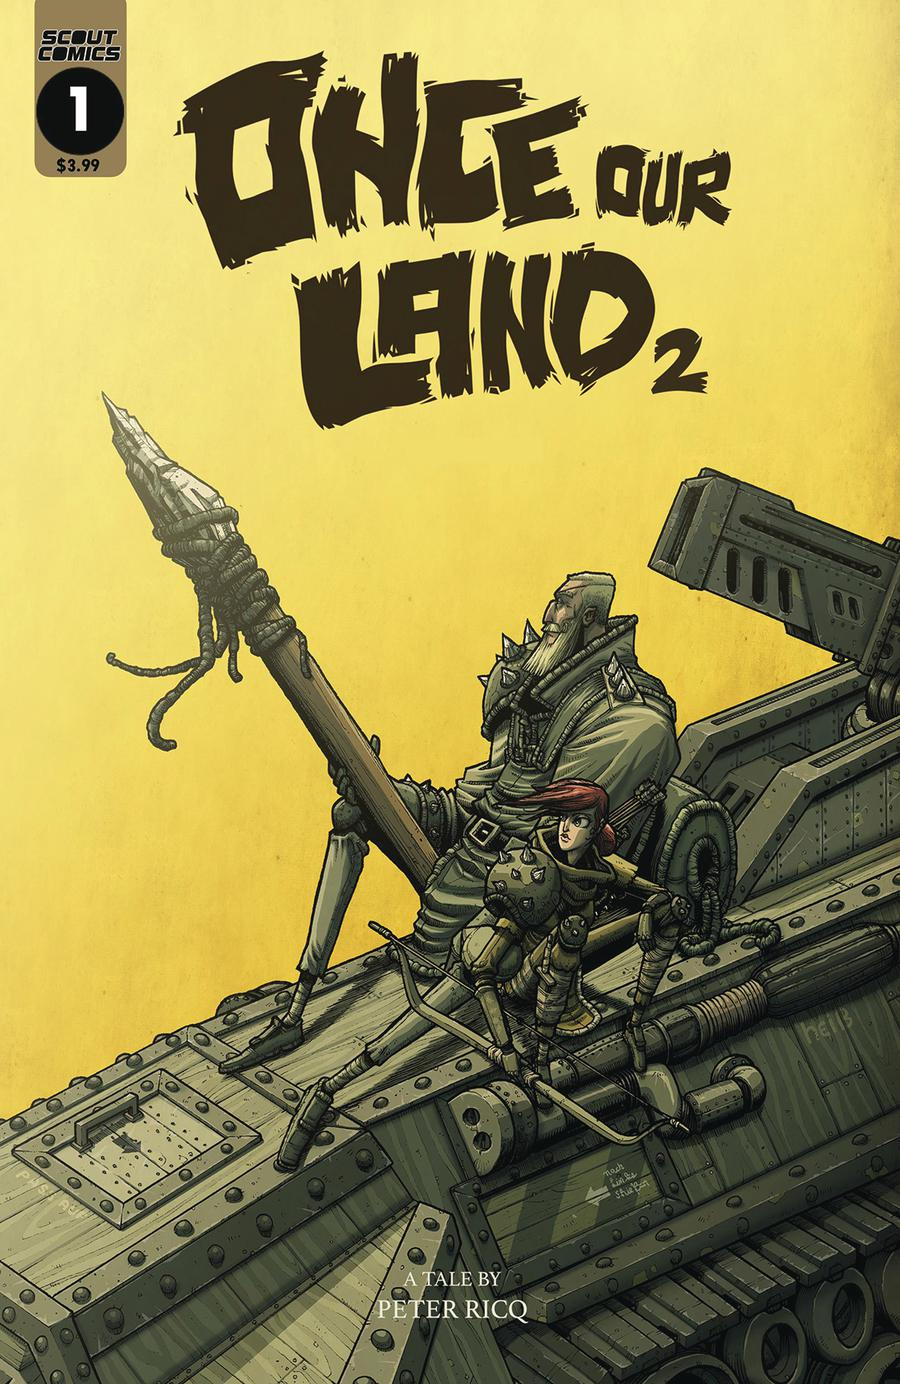 Once Our Land Book 2 #1